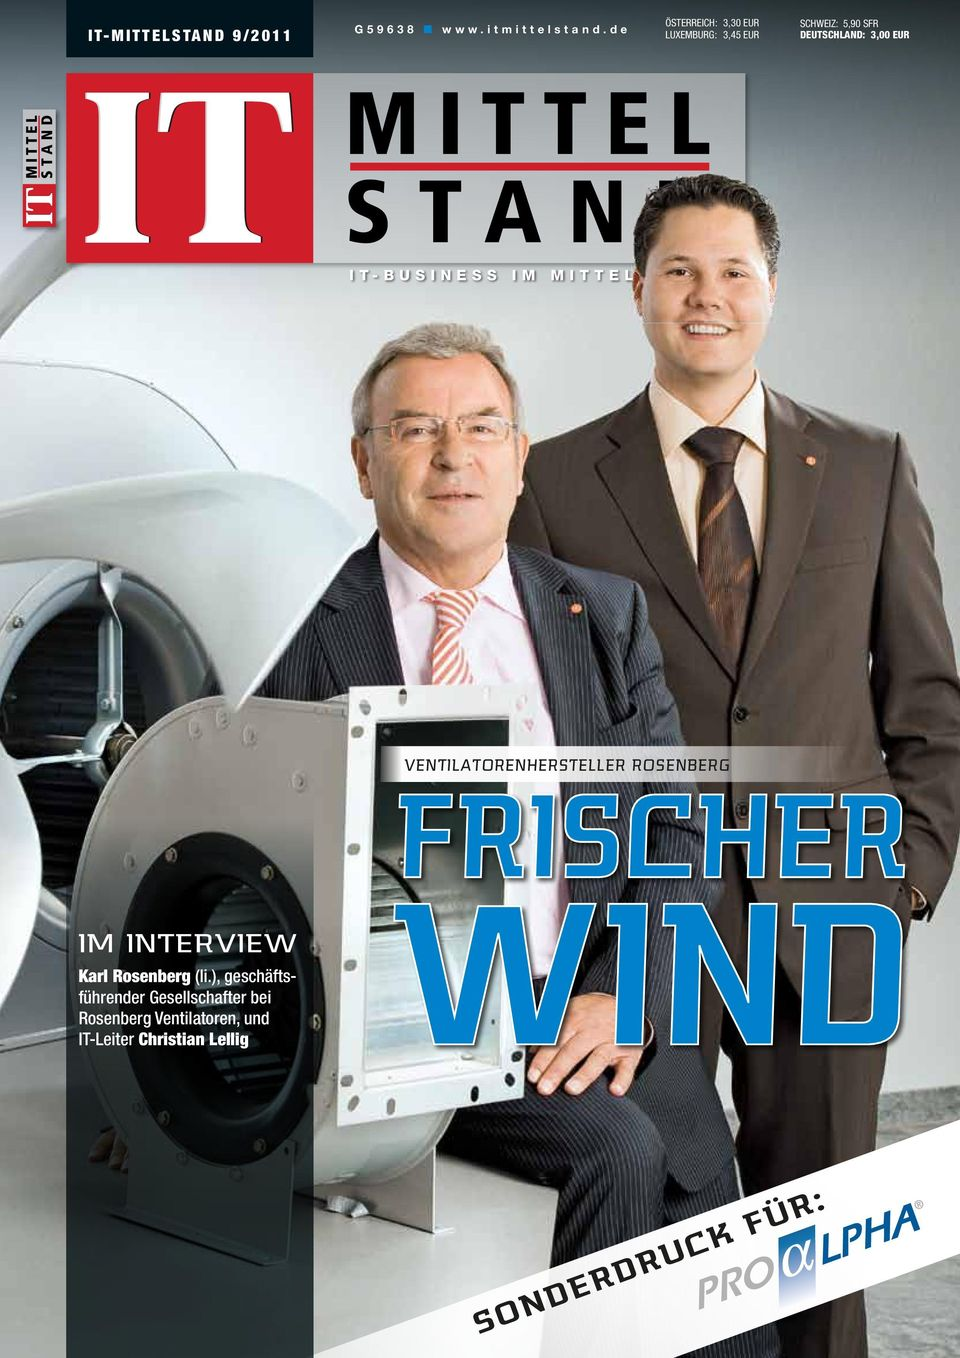 EUR IT-BUSINESS IM MITTELSTAND Ventilatorenhersteller Rosenberg Im Interview